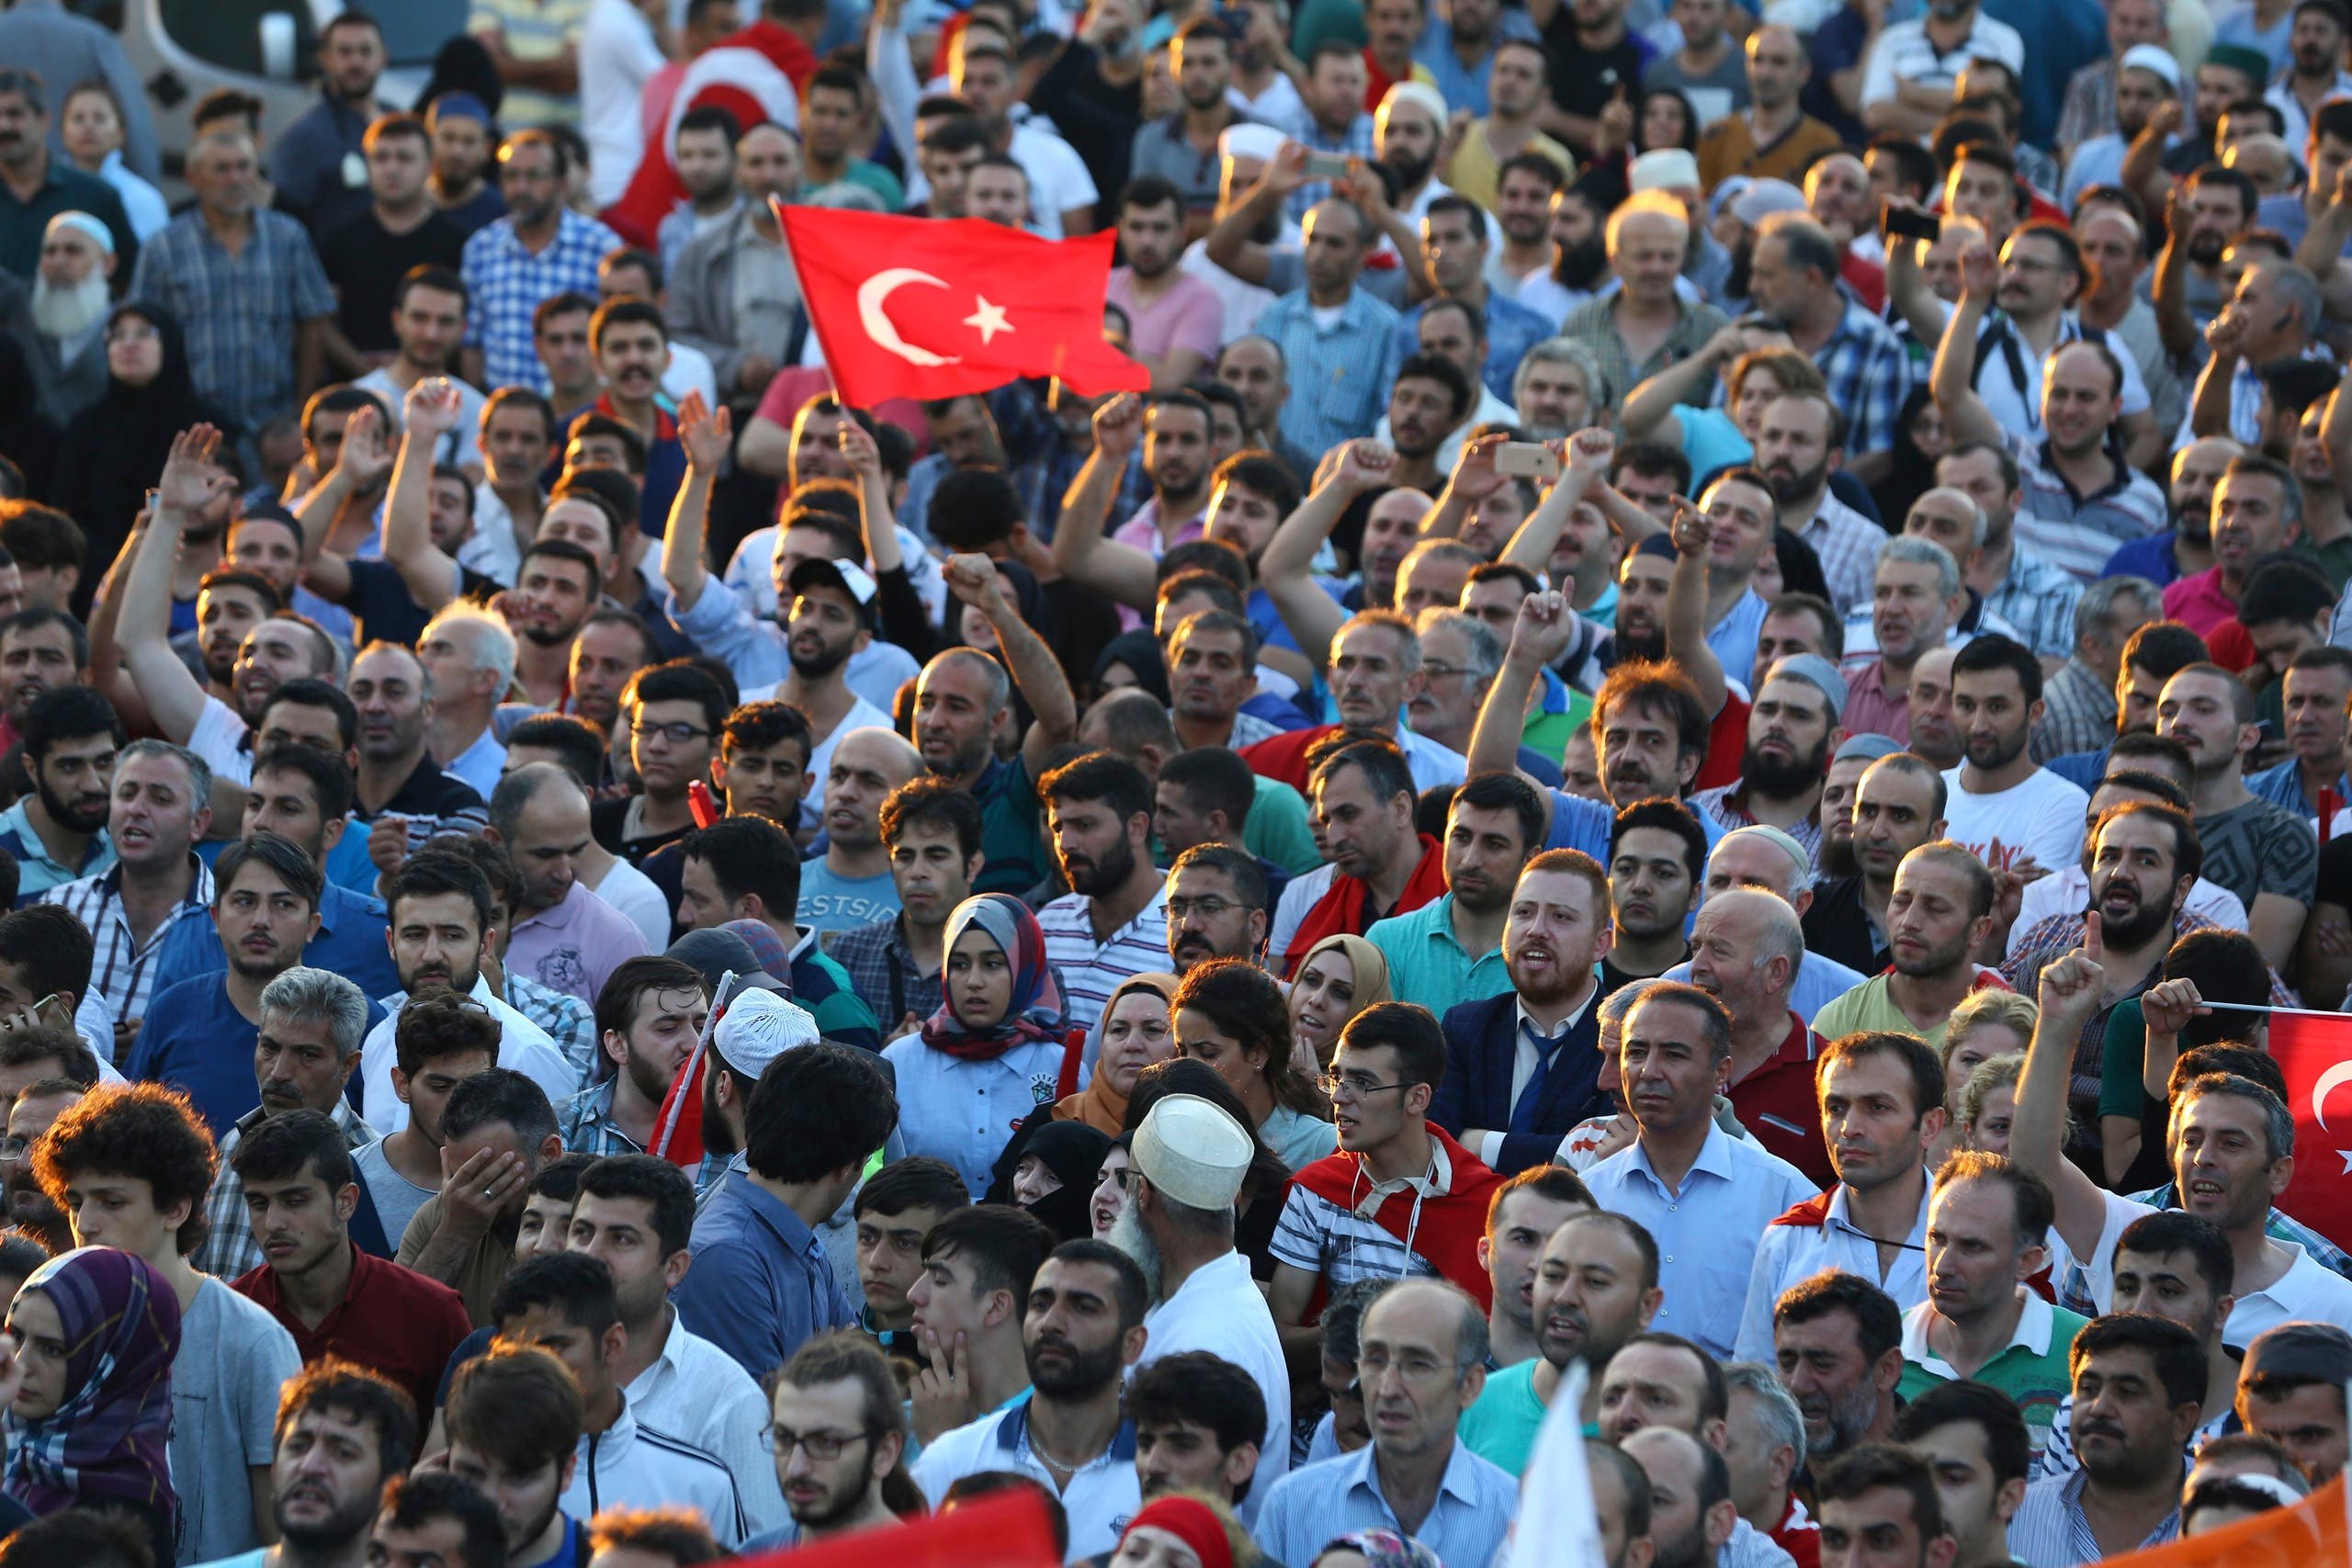 Supporters of Turkish President Tayyip Erdogan cheer at the Ataturk Airport in Istanbul, Turkey July 16, 2016. (Reuters)